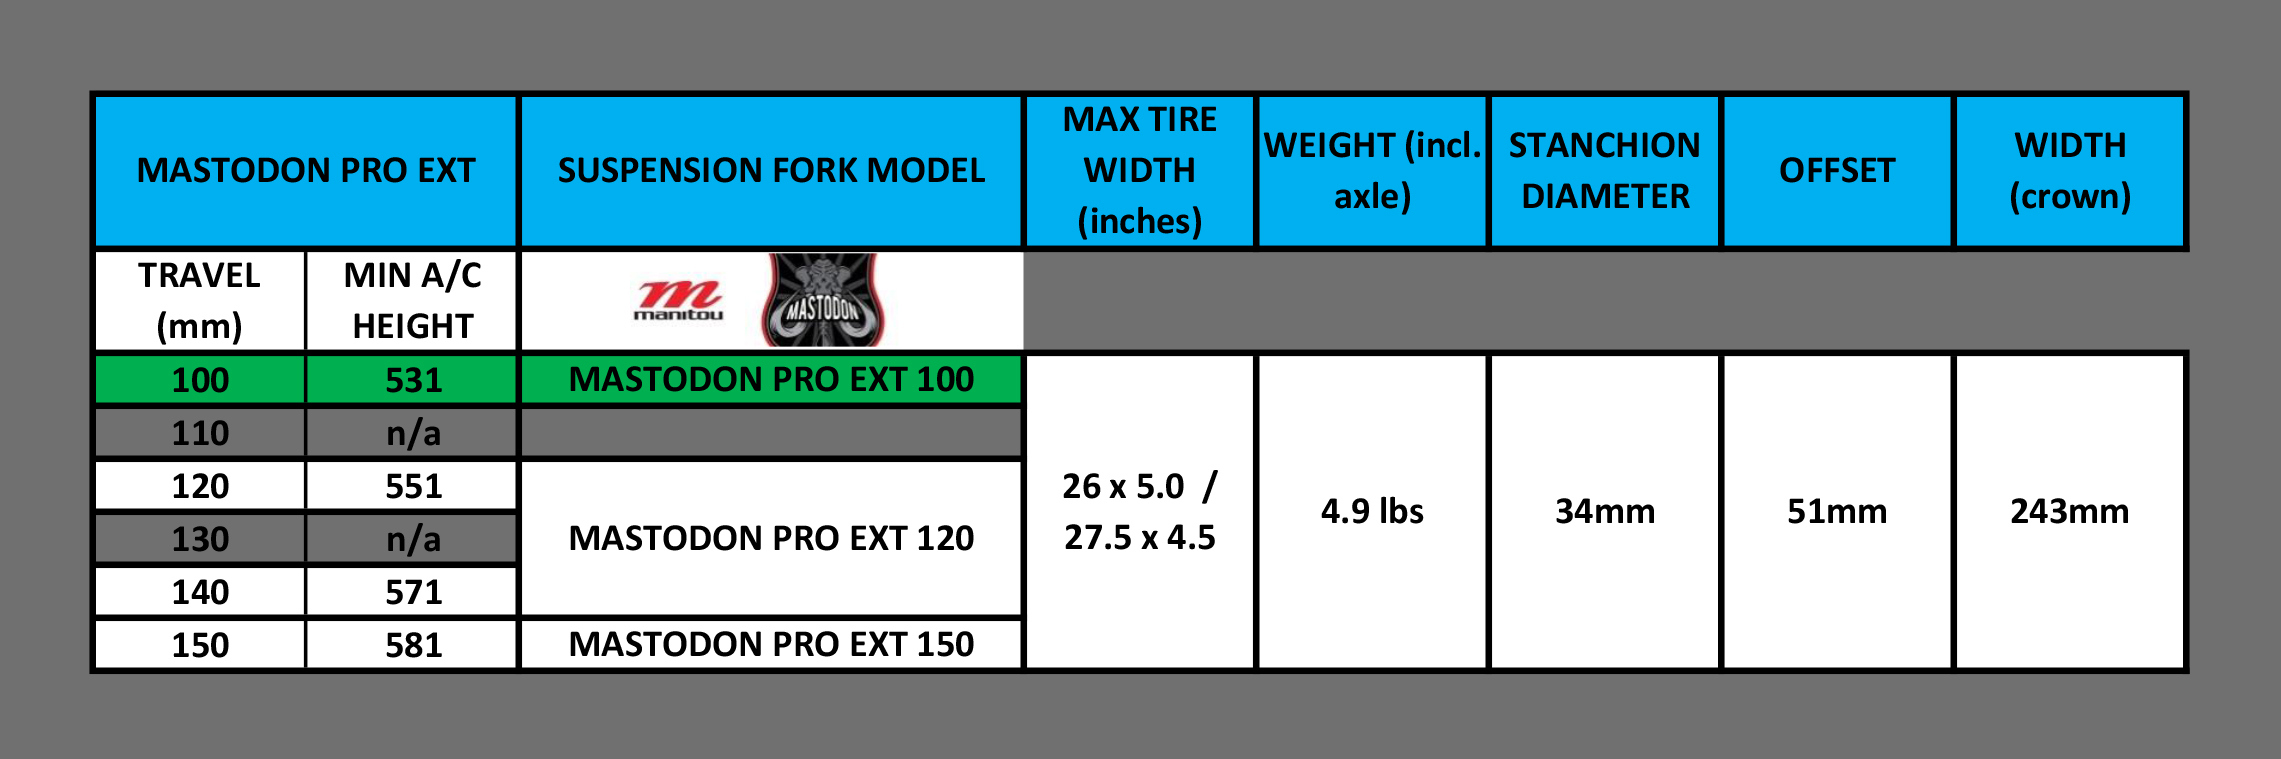 MANITOU MASTODON PRO EXT PHYSICAL SPECIFICATIONS and TIRE COMPATIBILITY